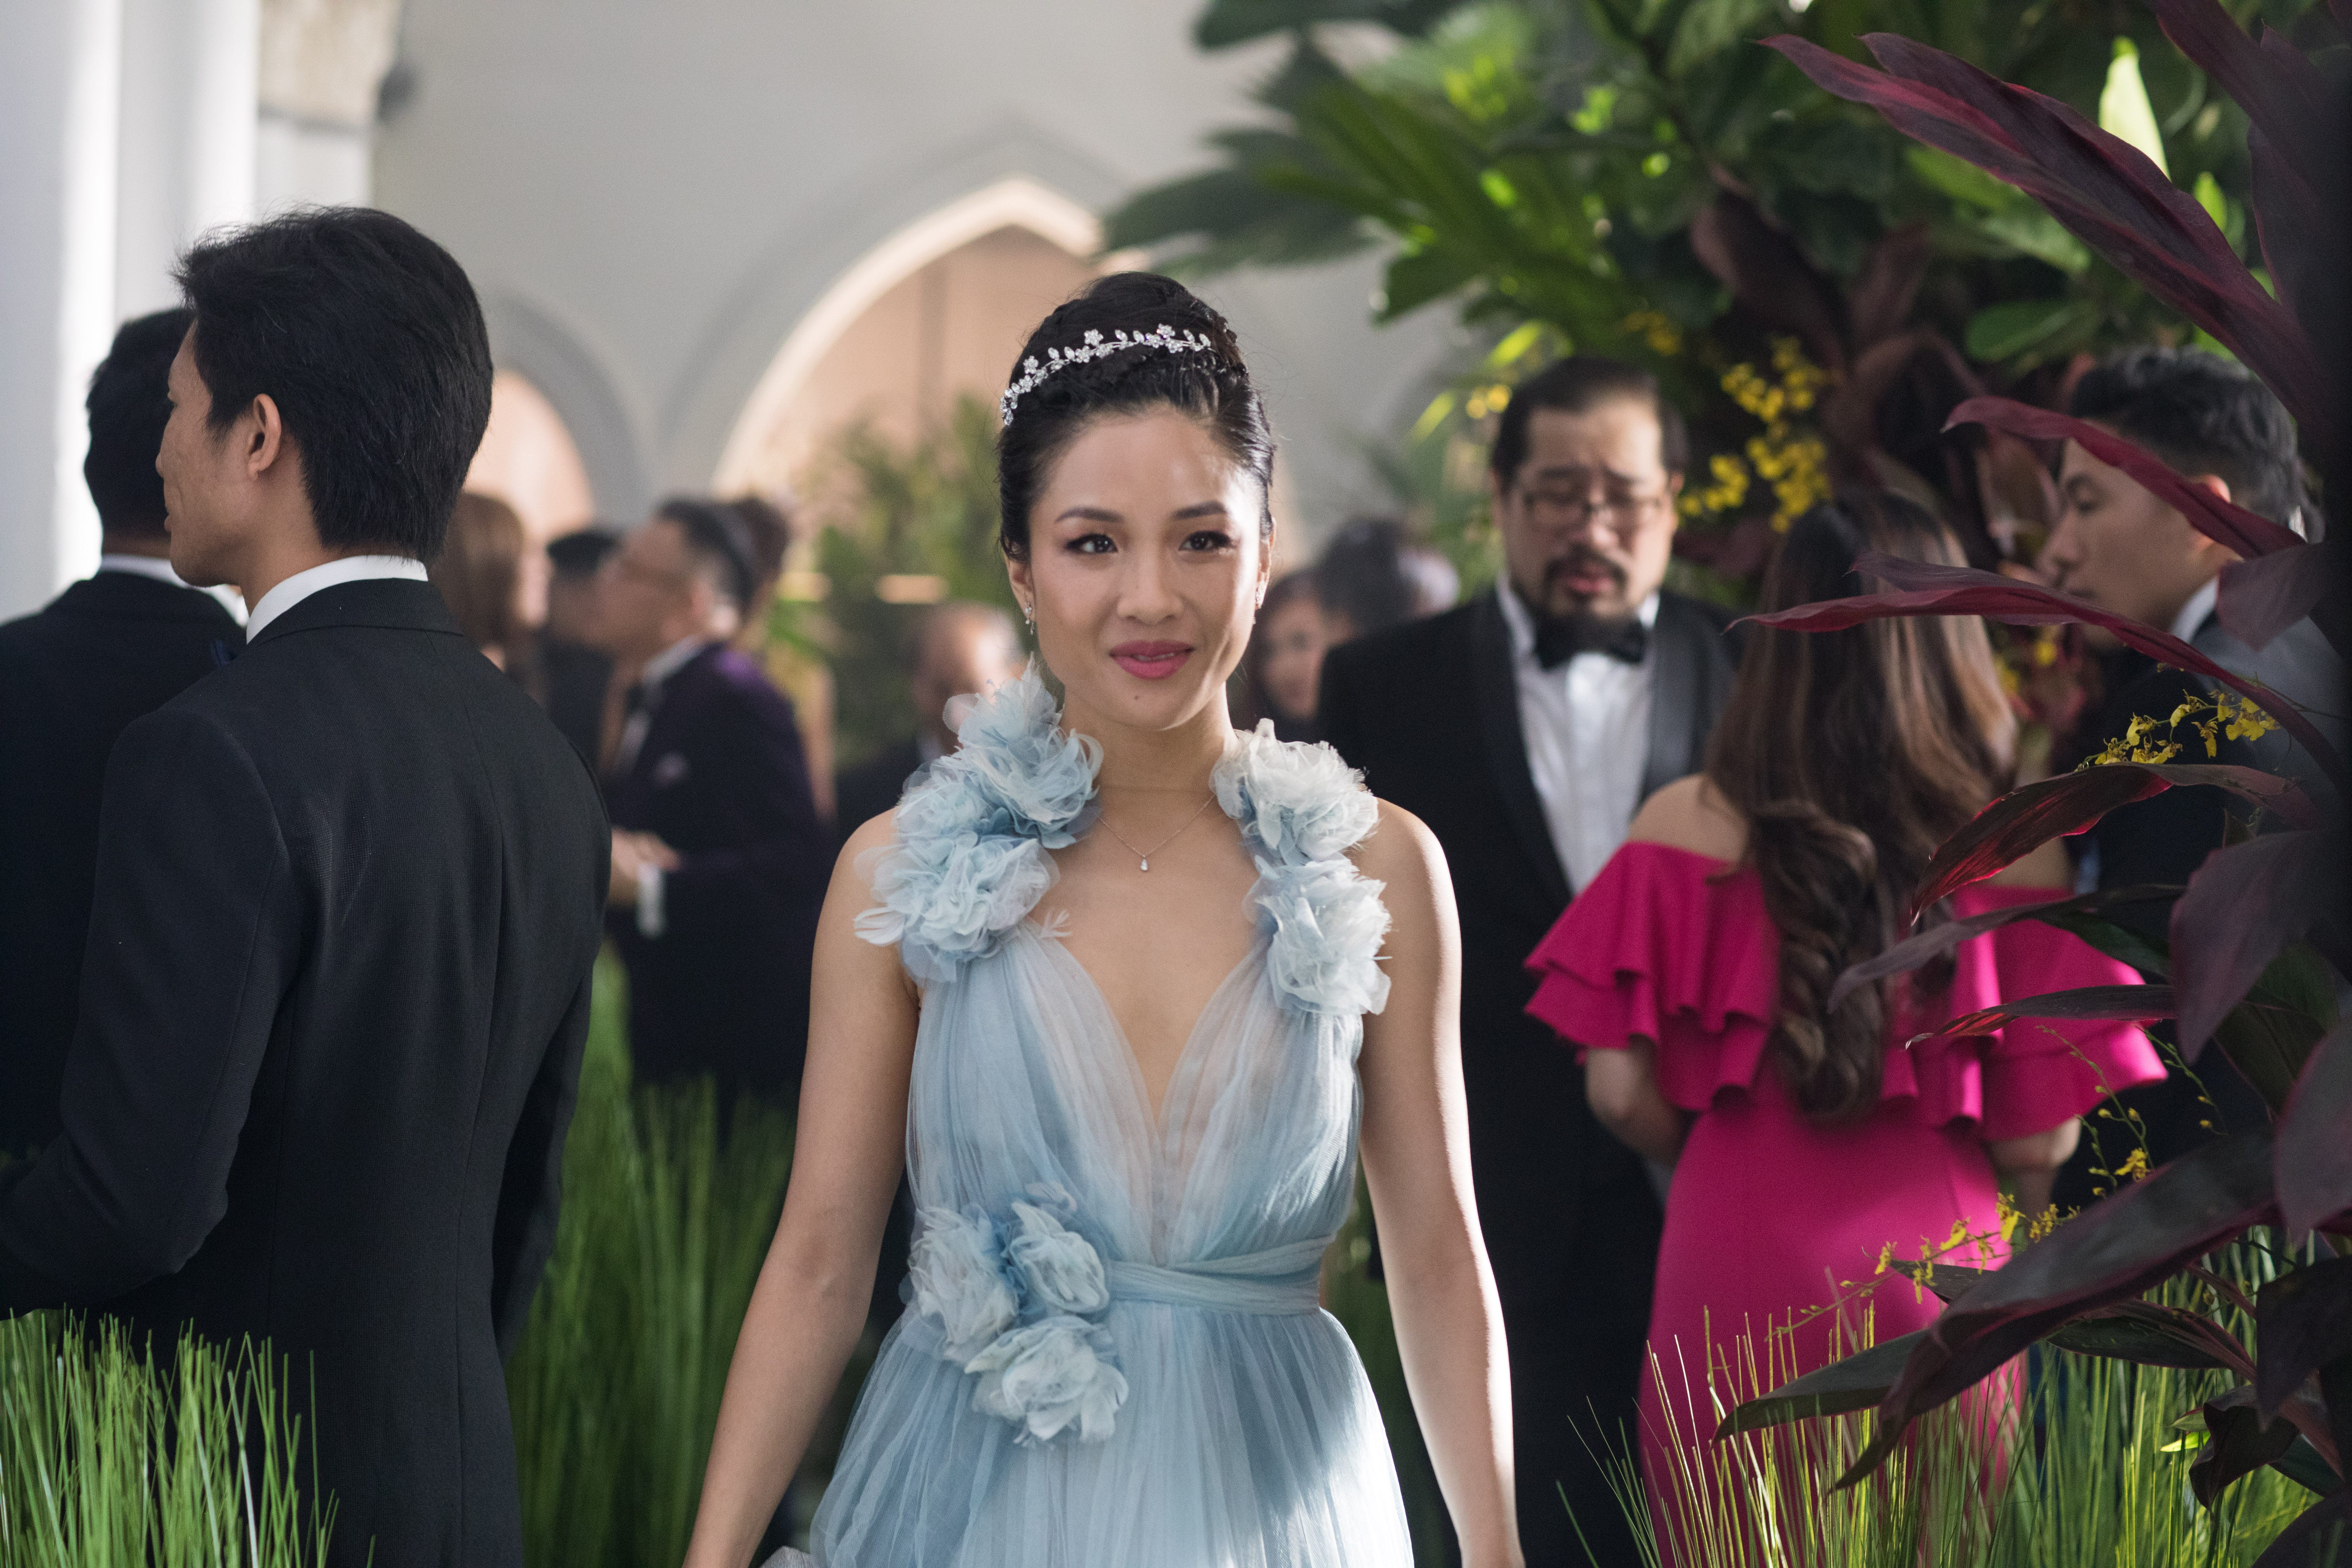 Oscars 2019: Biggest snubs including Bradley Cooper, Emily Blunt and 'Crazy Rich Asians'